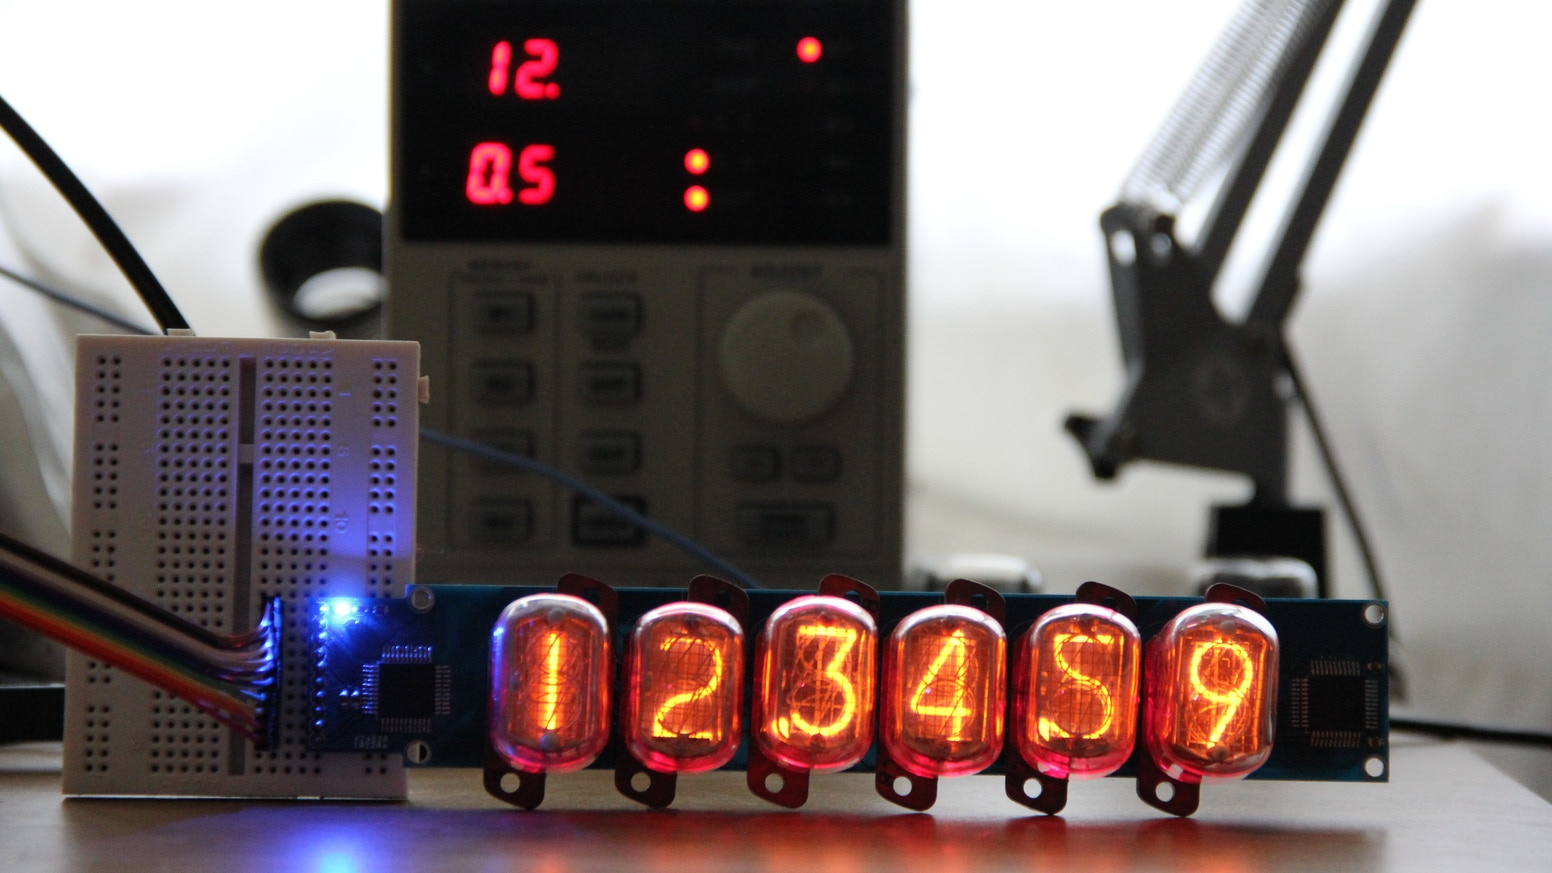 A Simple Way To Implement 6 Digit RGB Backlit Nixie Tube Display Into Any